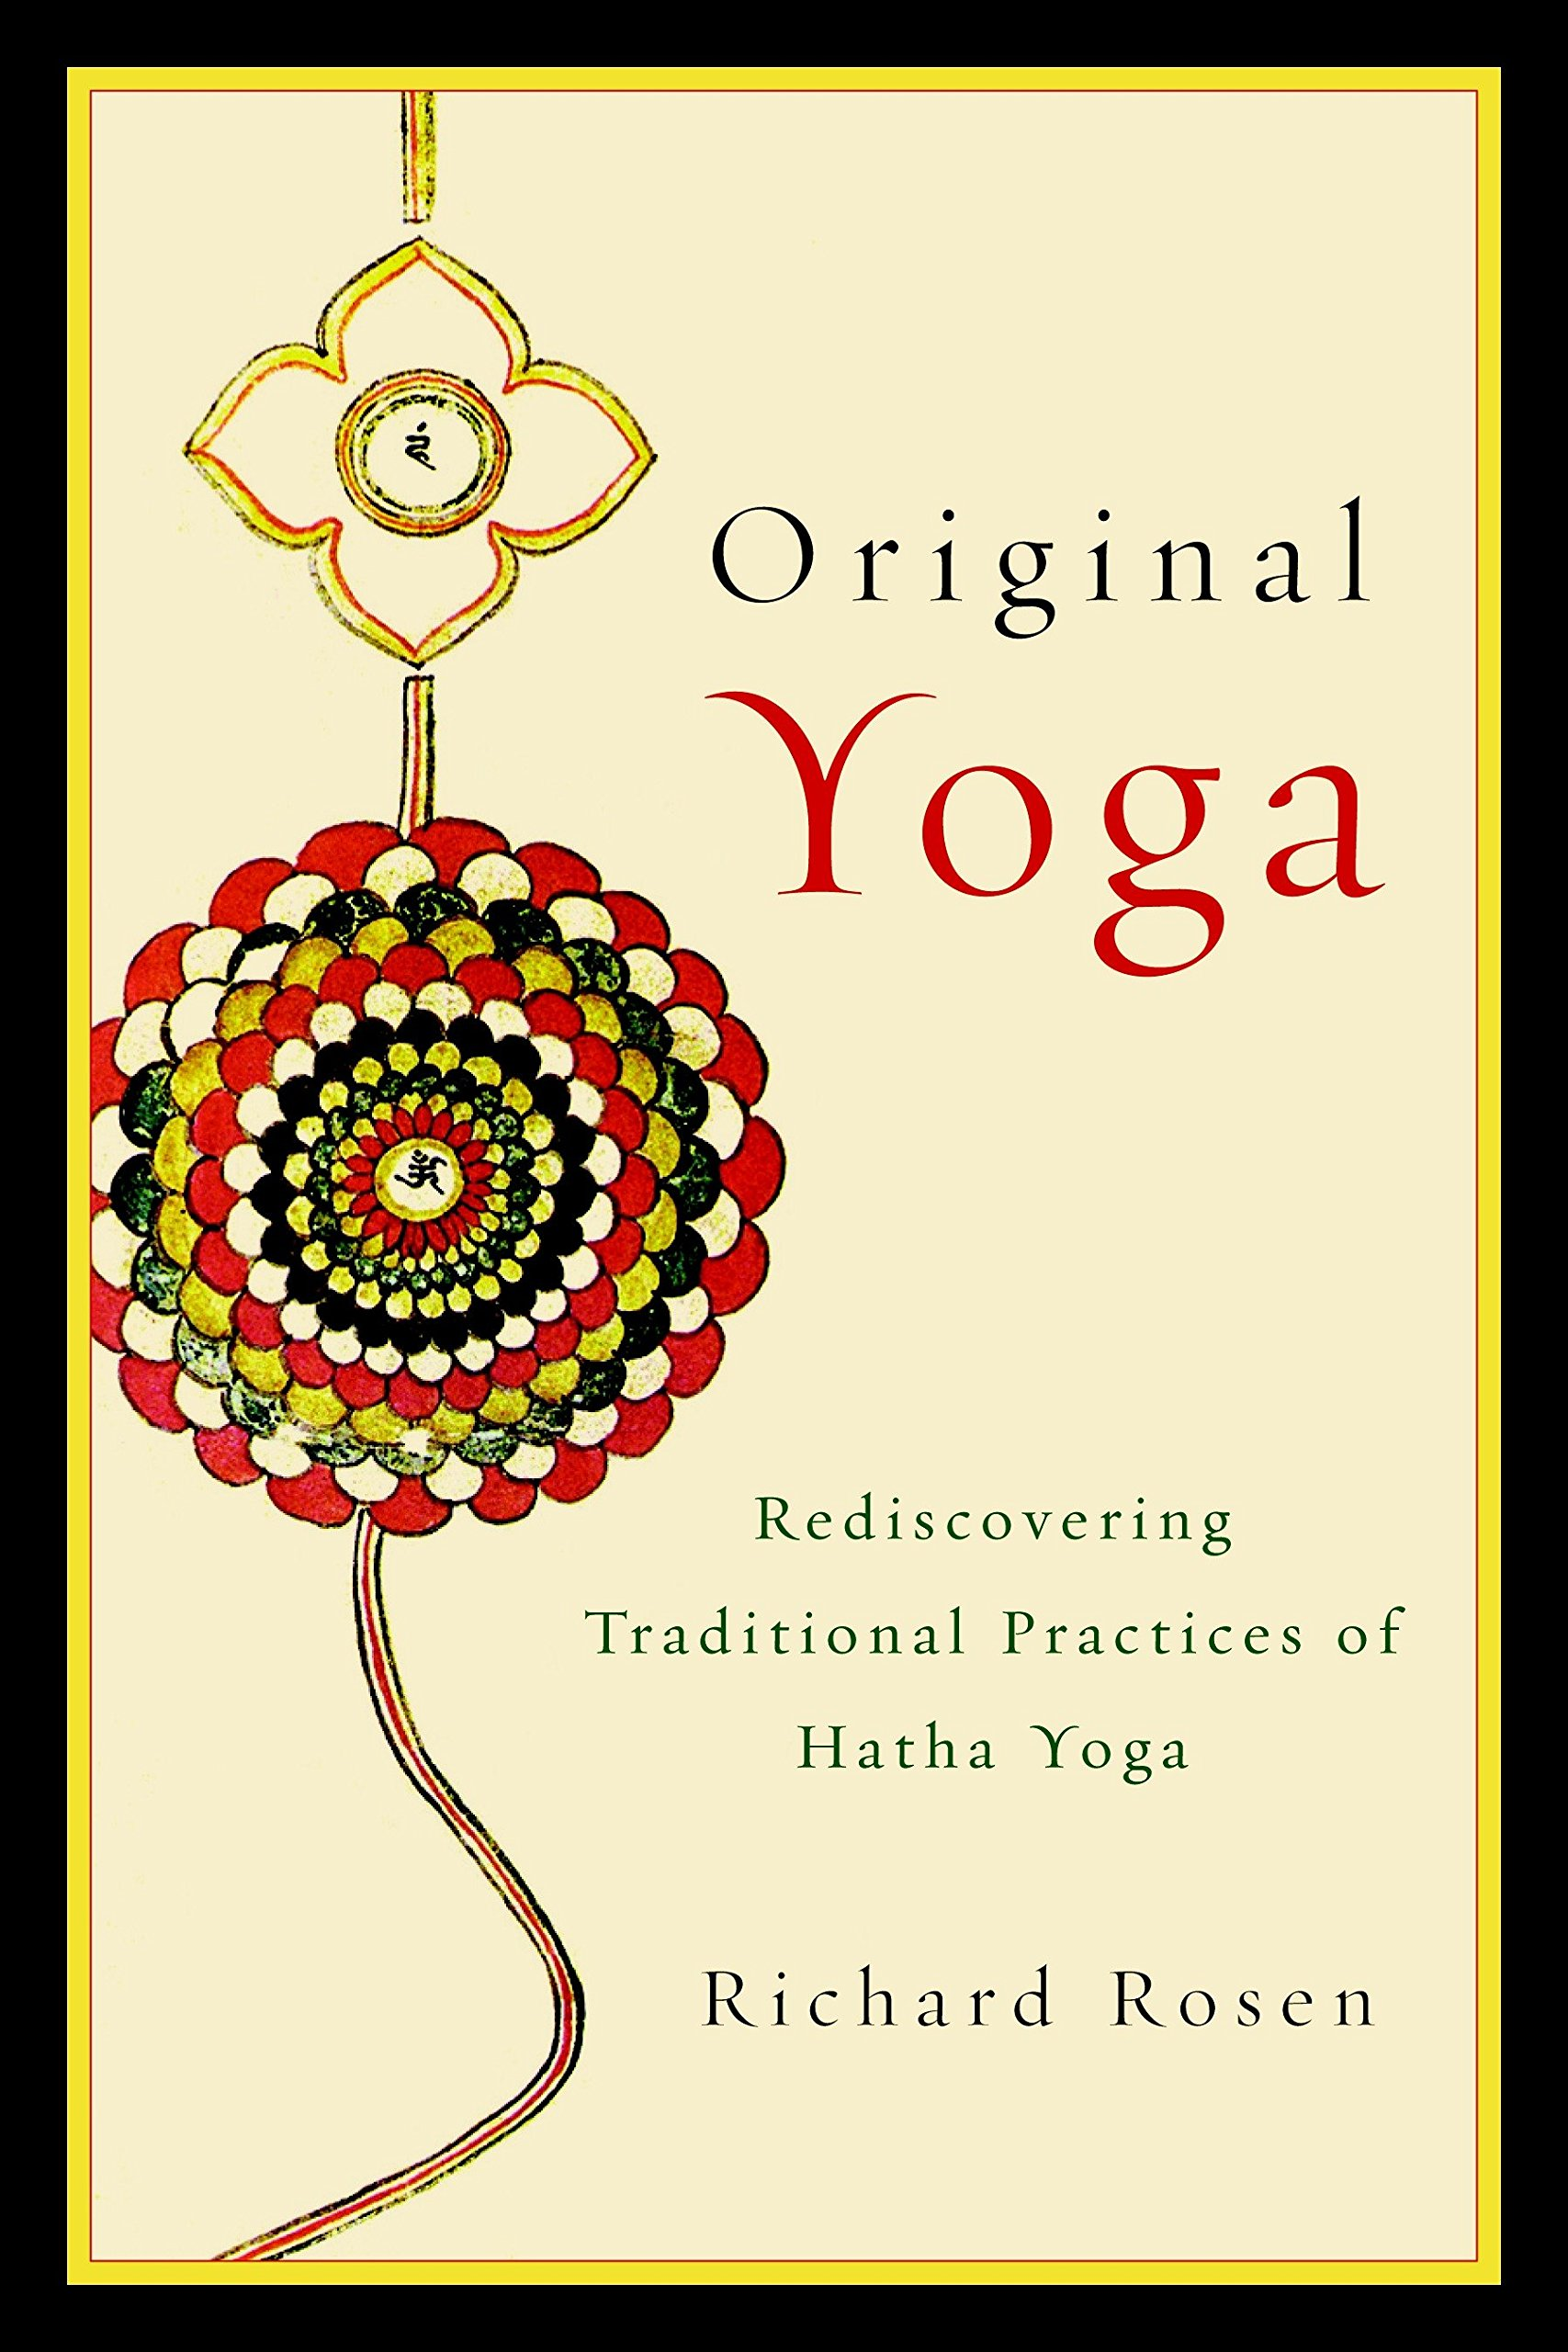 Original Yoga Rediscovering Traditional Practices Of Hatha Yoga Rosen Richard 9781590308134 Amazon Com Books